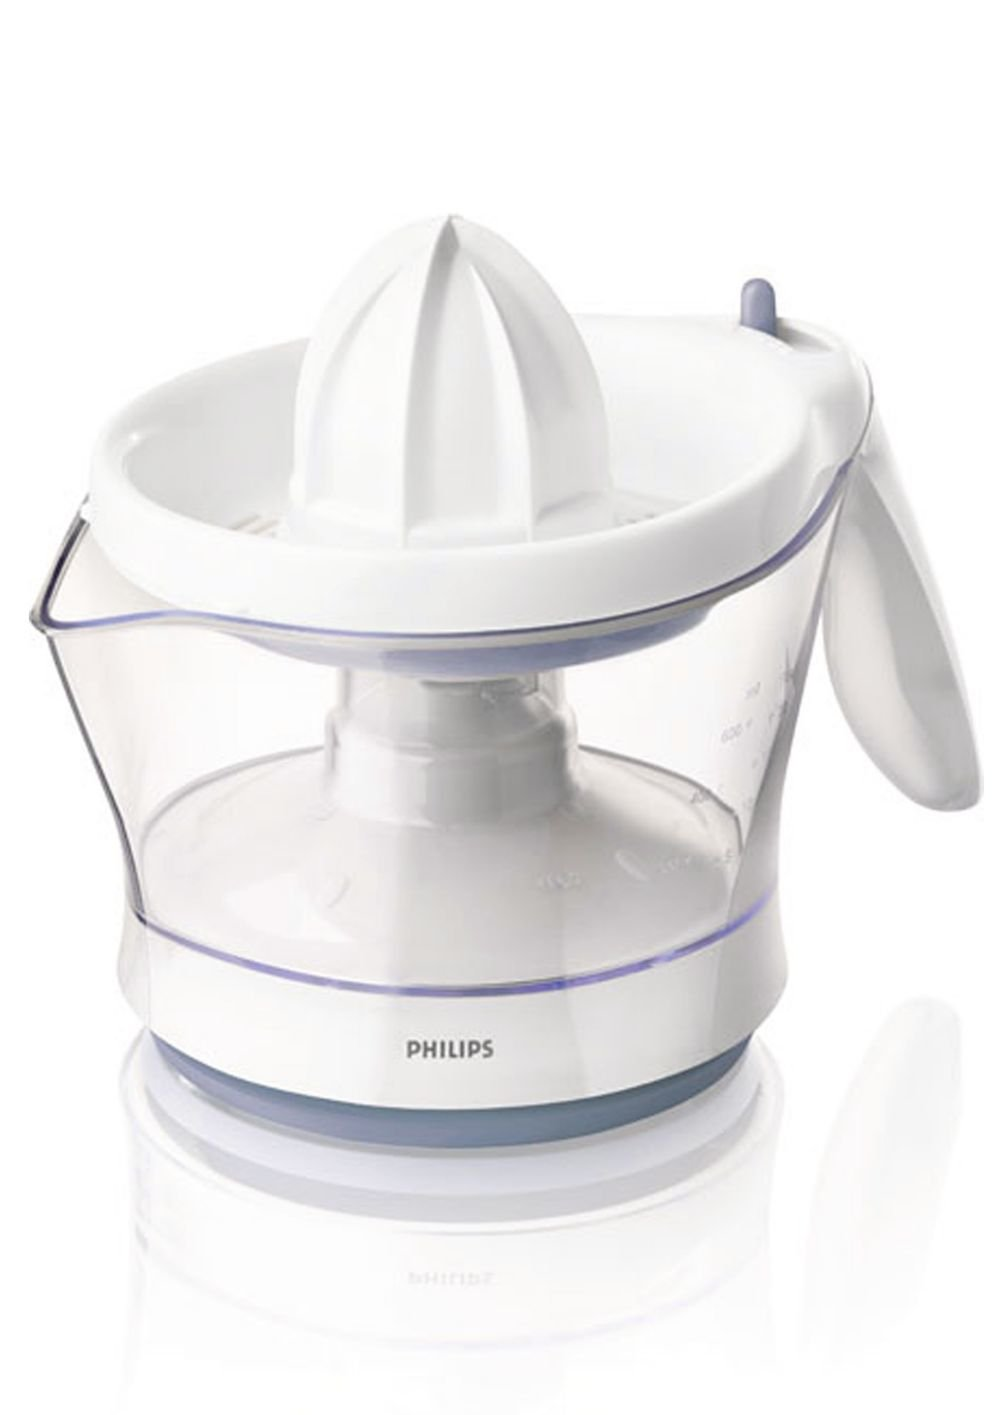 Philips HR2744/41 Viva Collection Citrus Press, 0.6 Litre, 25 Watt - White